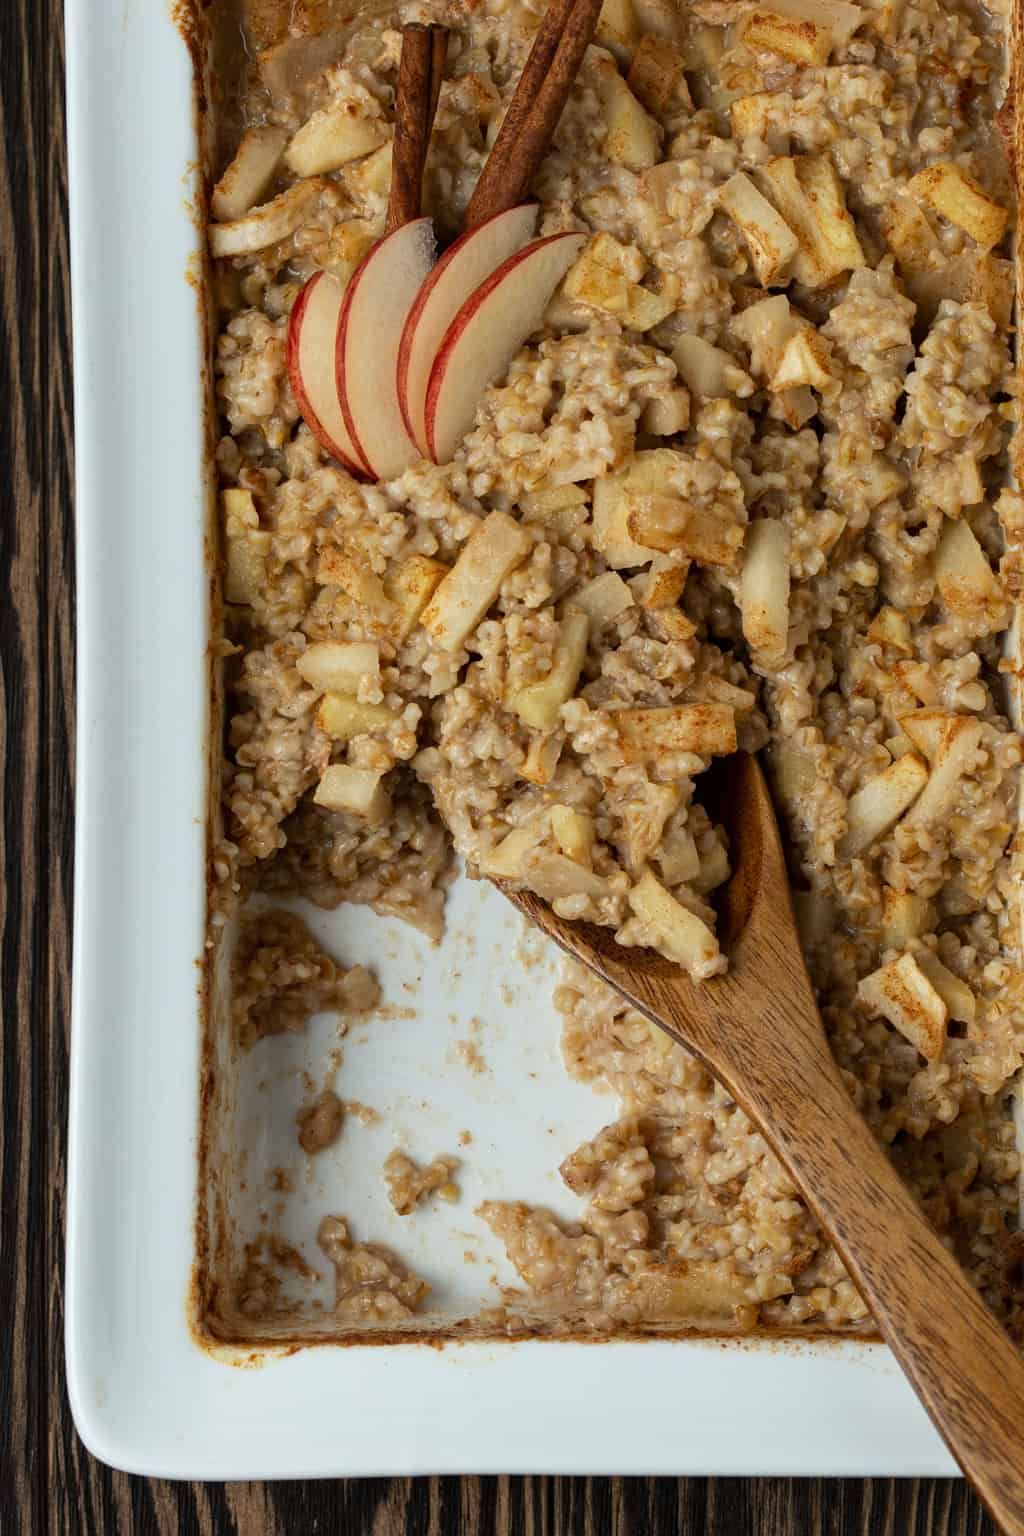 A dish is filled with oatmeal , with Apples and cinnamon.